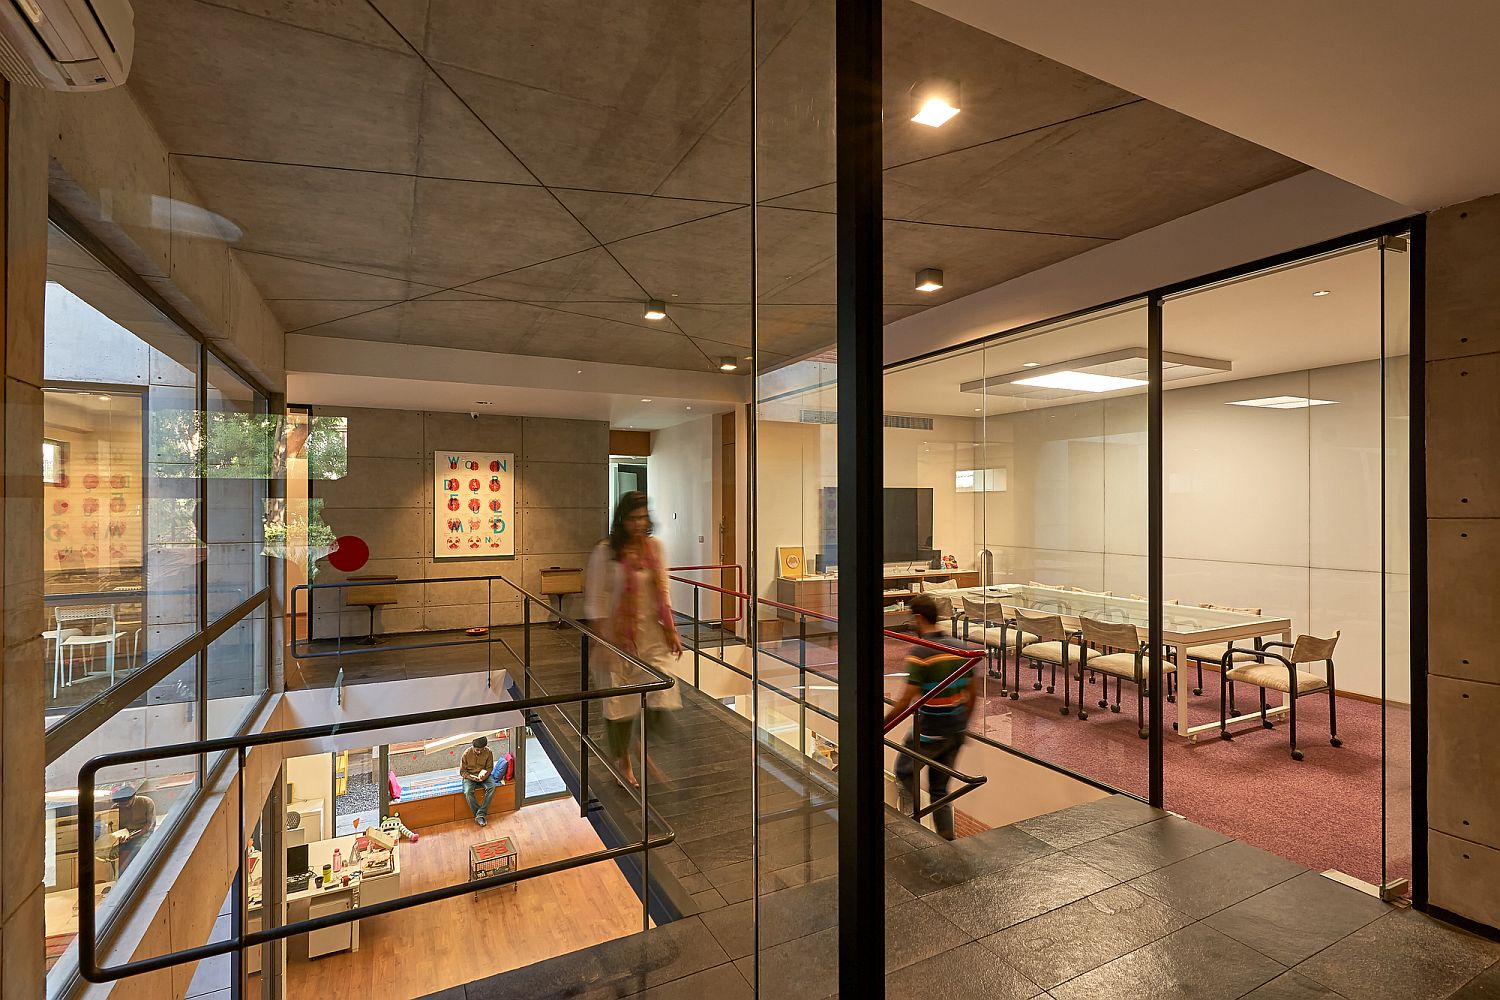 Upper level meeting rooms and workspaces inside the studio